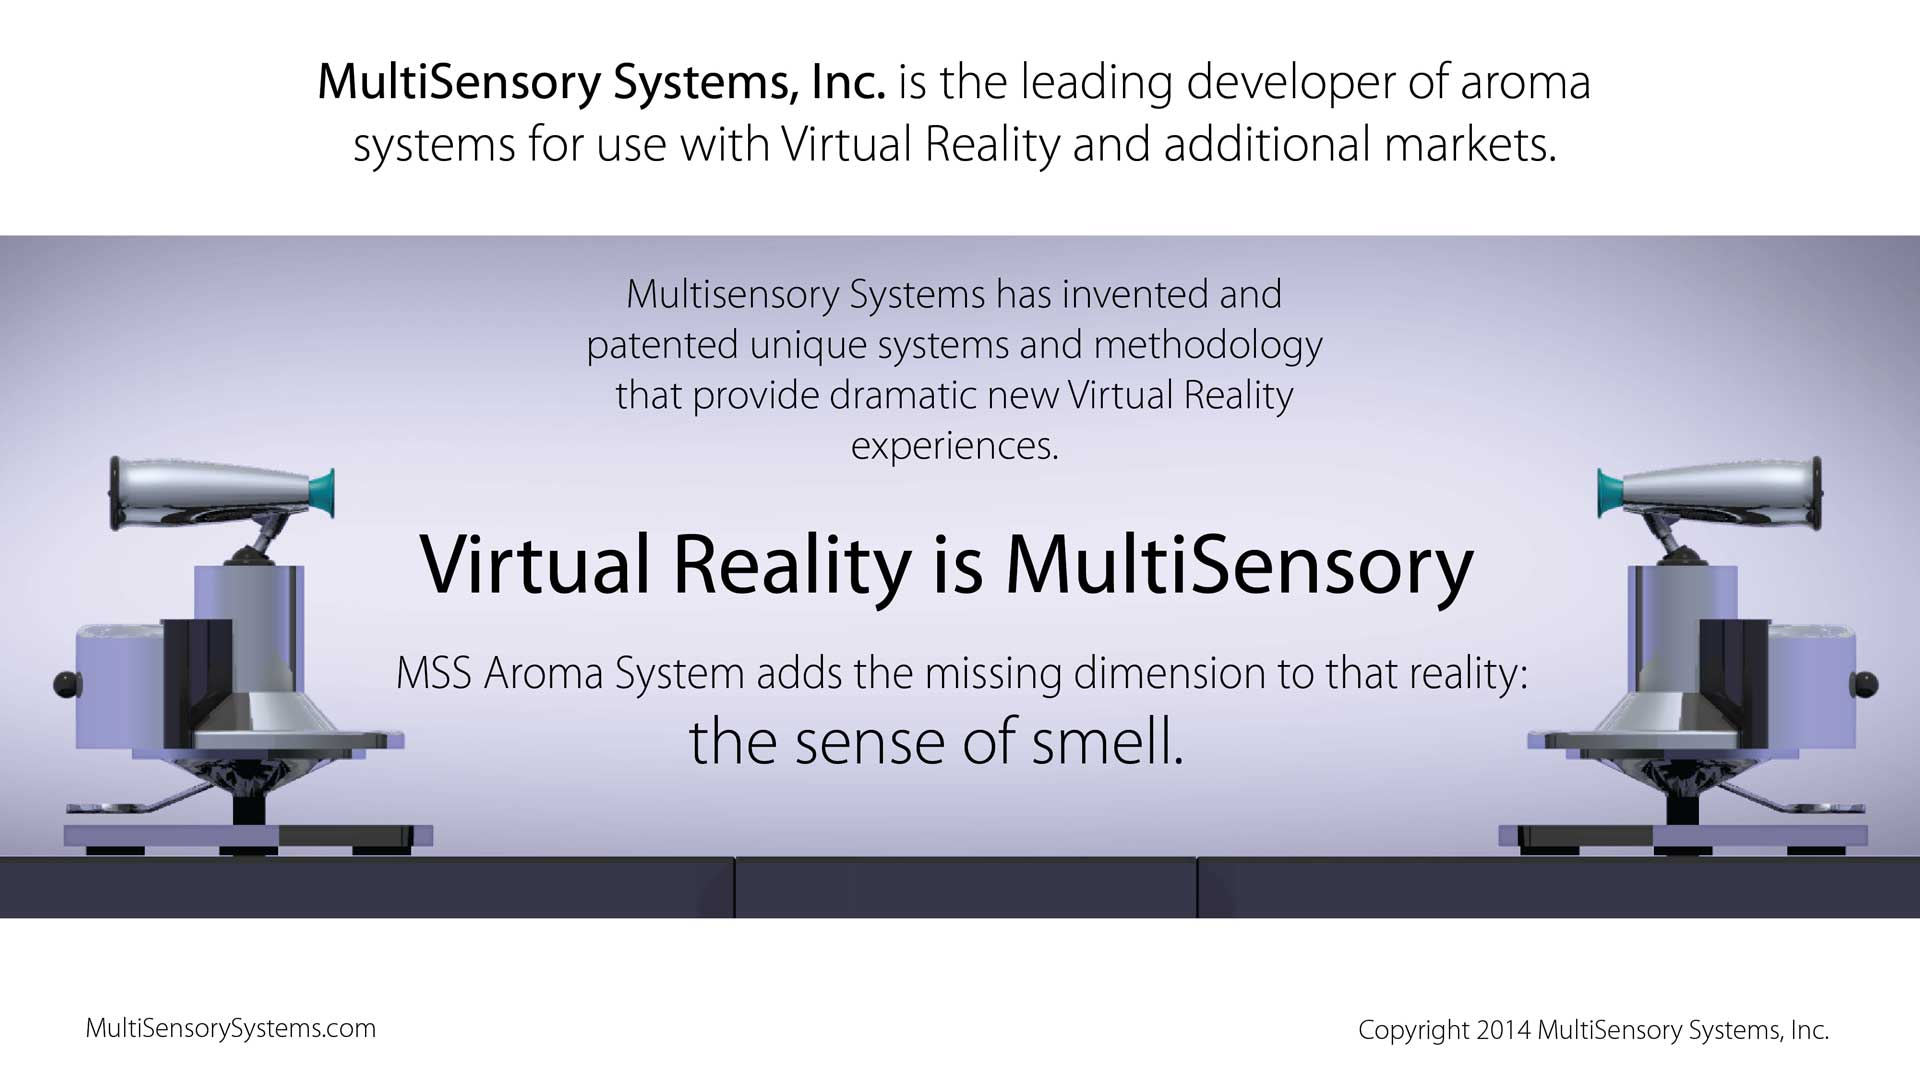 Virtual Reality is Multisensory